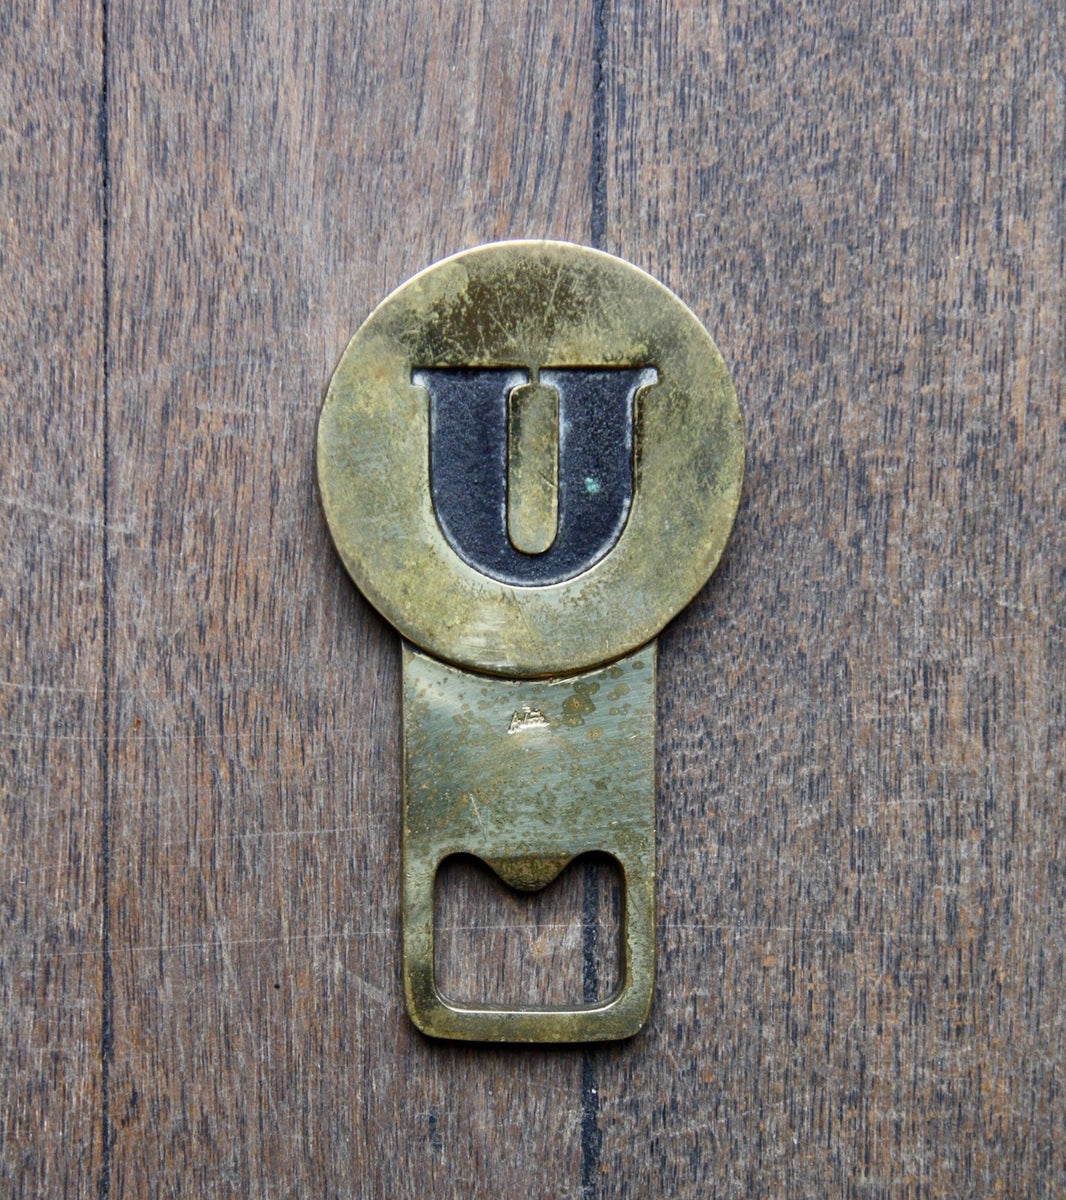 Unique Initialed Bottle Opener Carl Auböck - Image 11